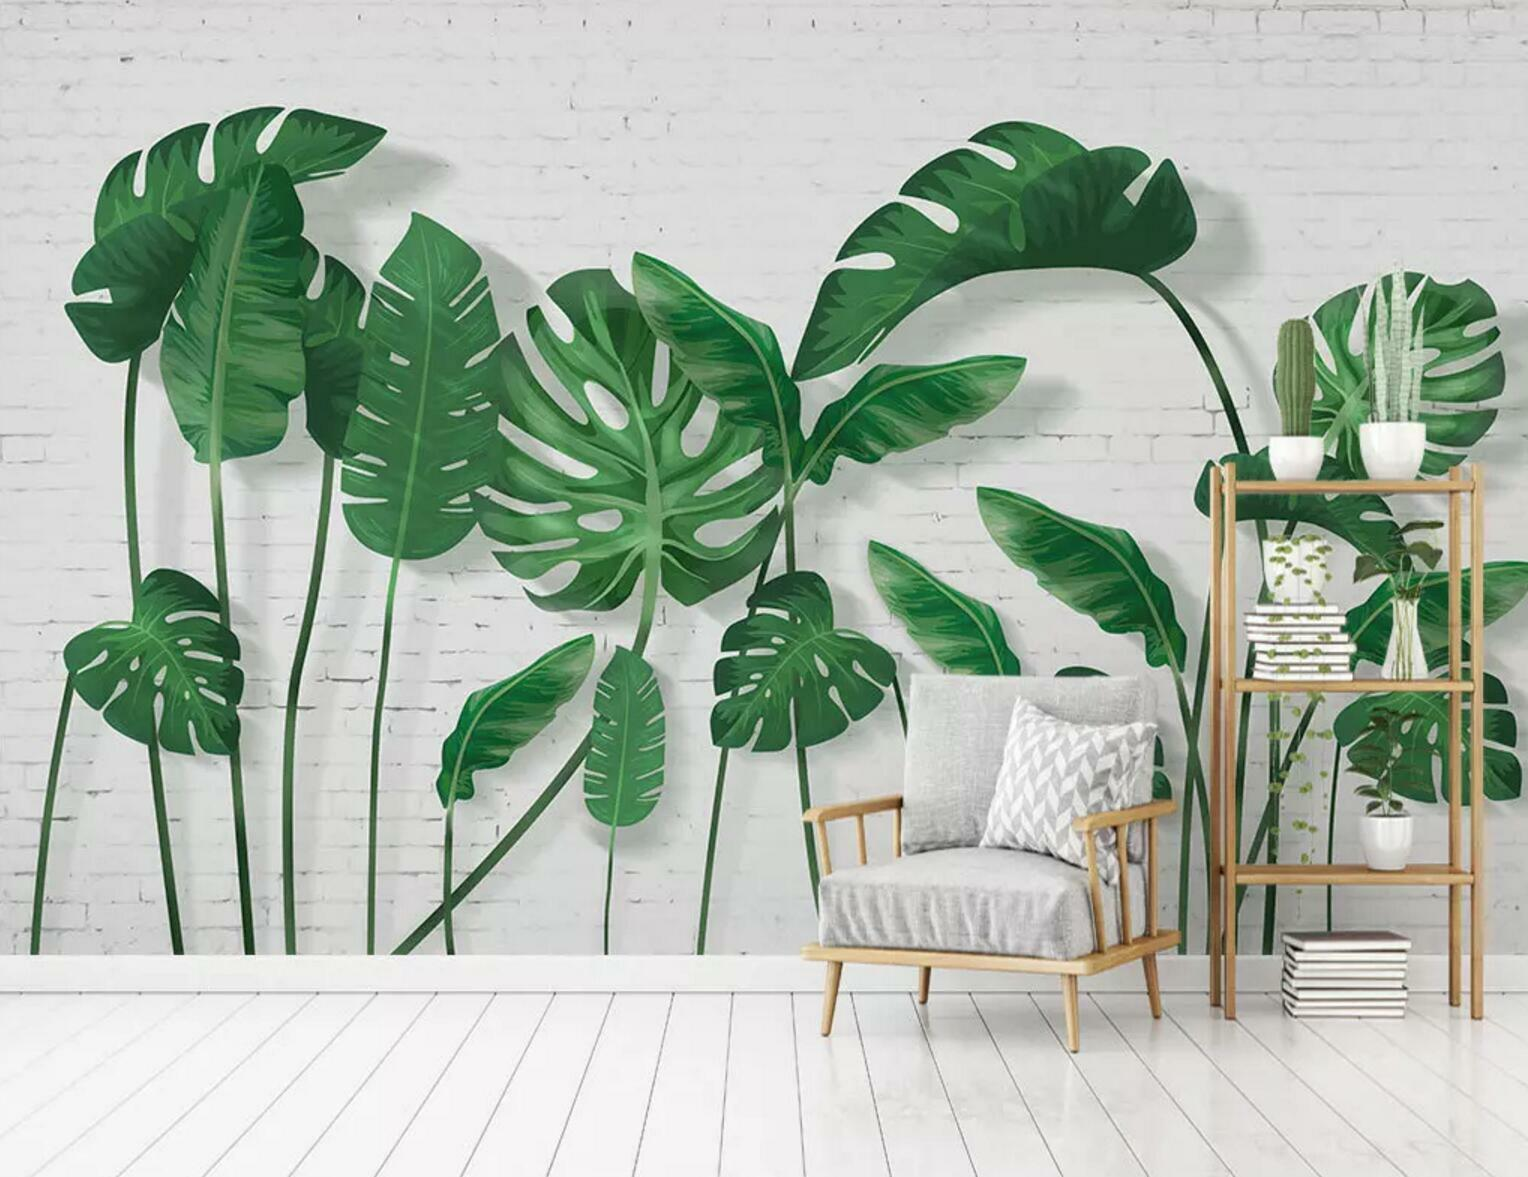 3D Grün Leaf Plant 4 Wall Paper Exclusive MXY Wallpaper Mural Decal Indoor wall